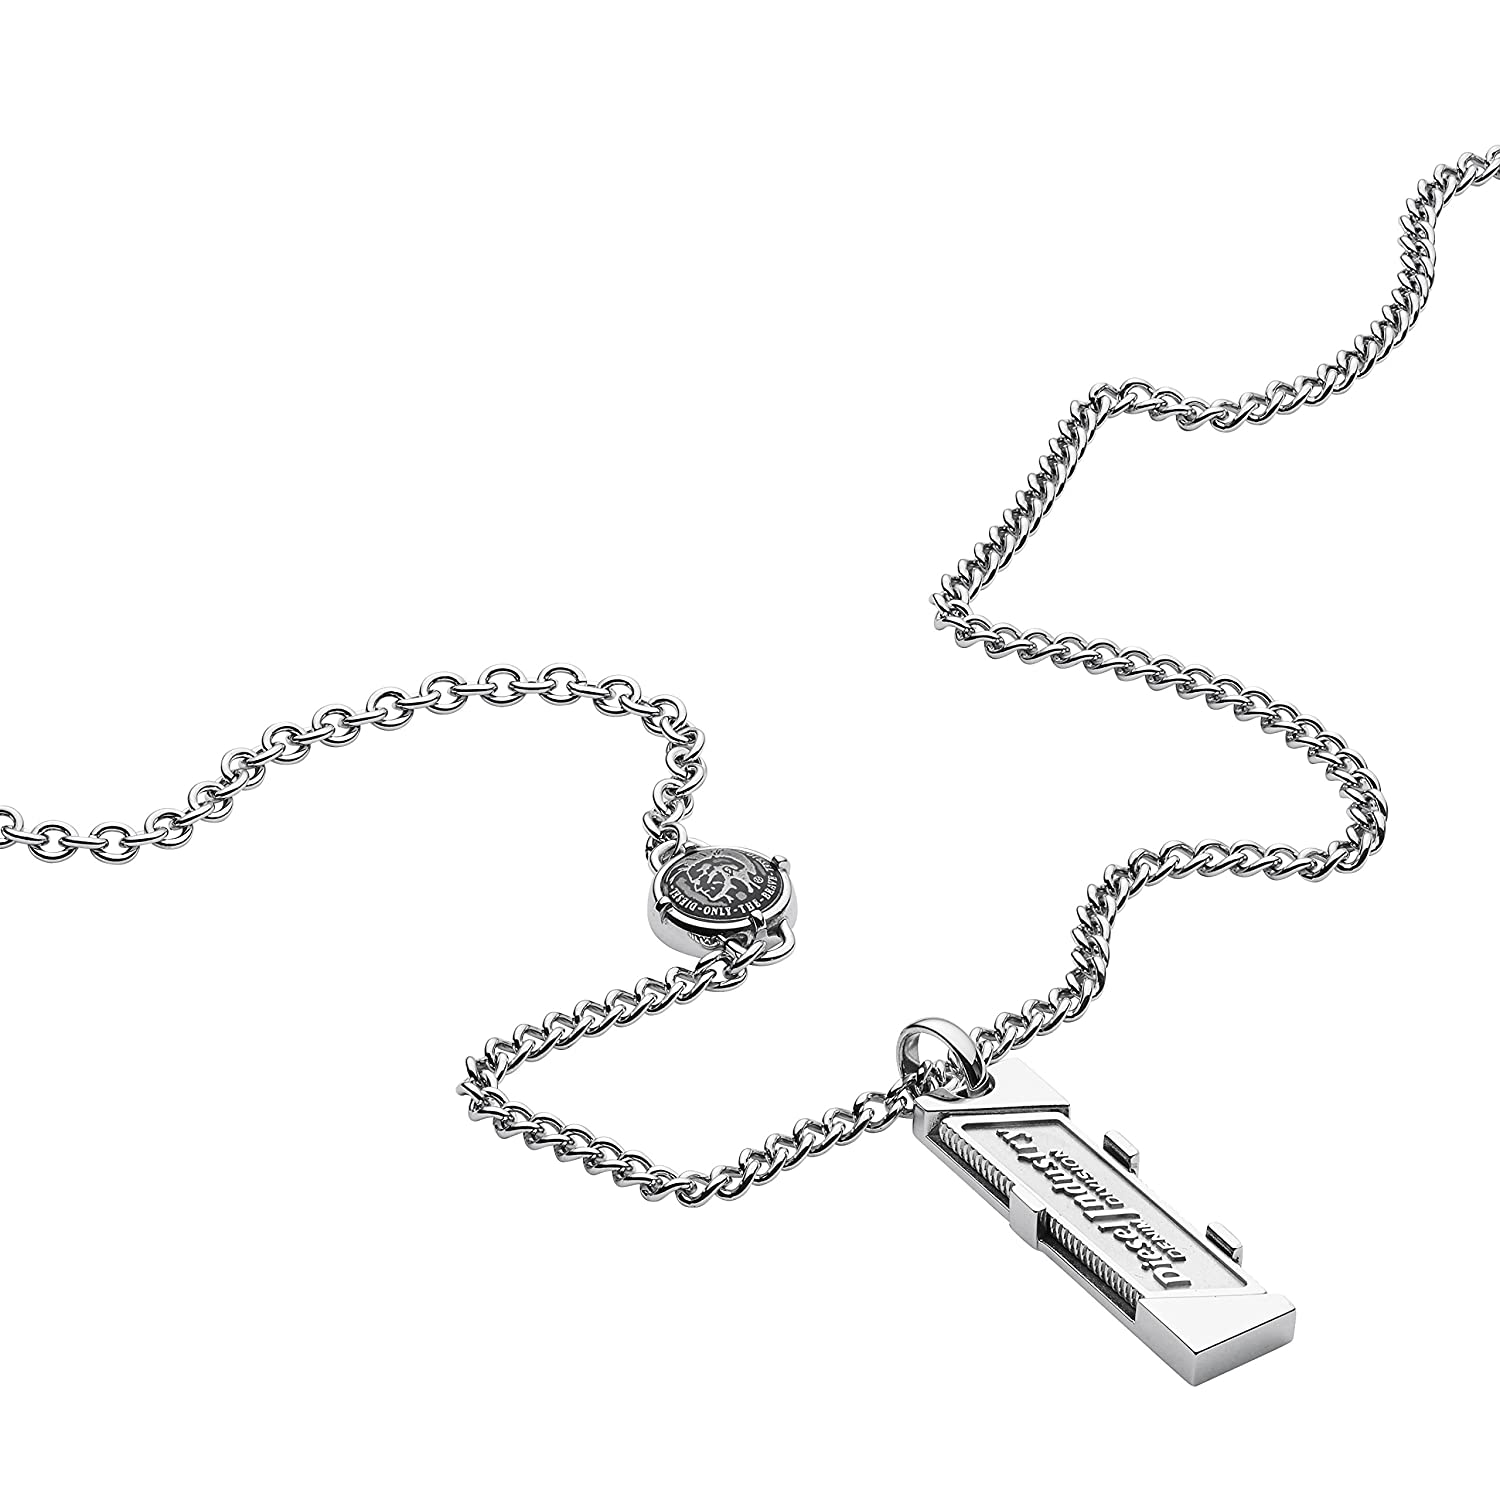 Diesel Men's Silver Necklace DX1036040 wJNEow7RWE